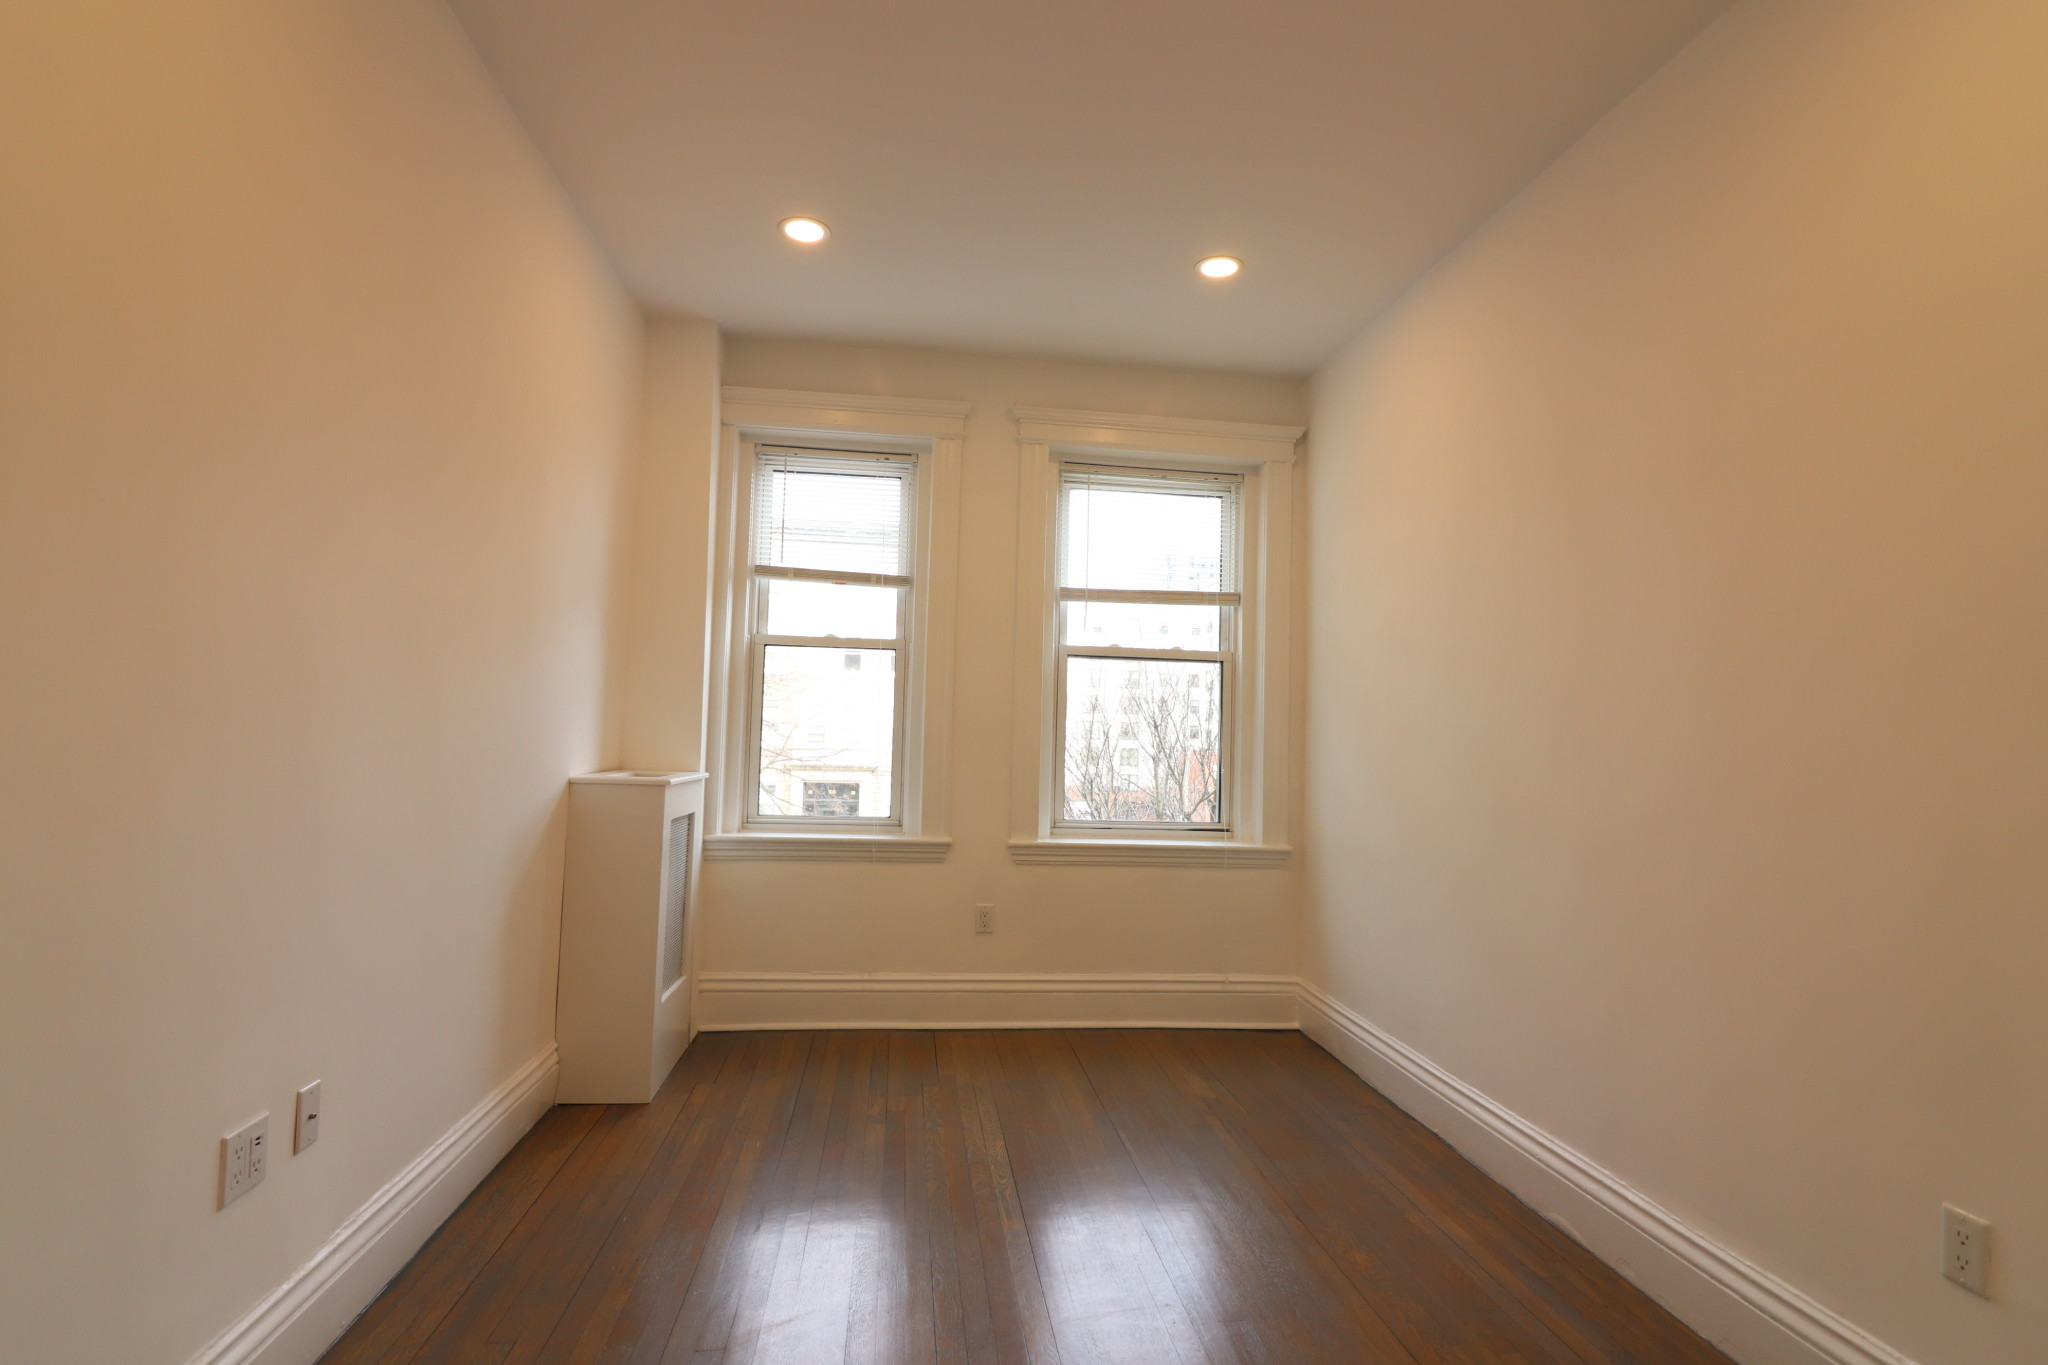 Photo 6 for Queensberry St.